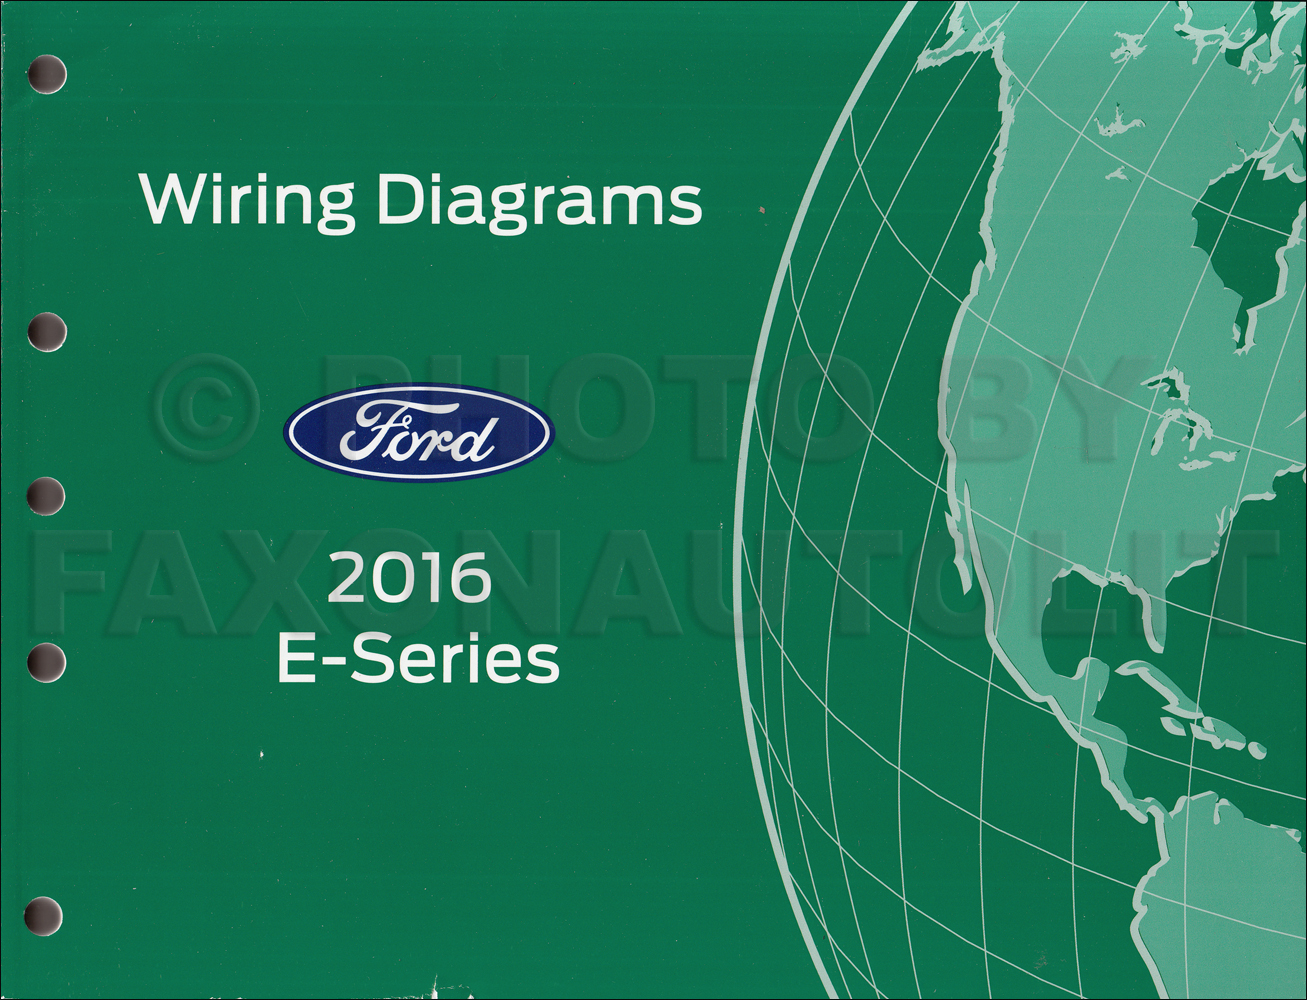 Ford E 450 Wiring Diagram Guide And Troubleshooting Of 2007 Ktm 2016 350 Manual Original Rh Faxonautoliterature Com 2002